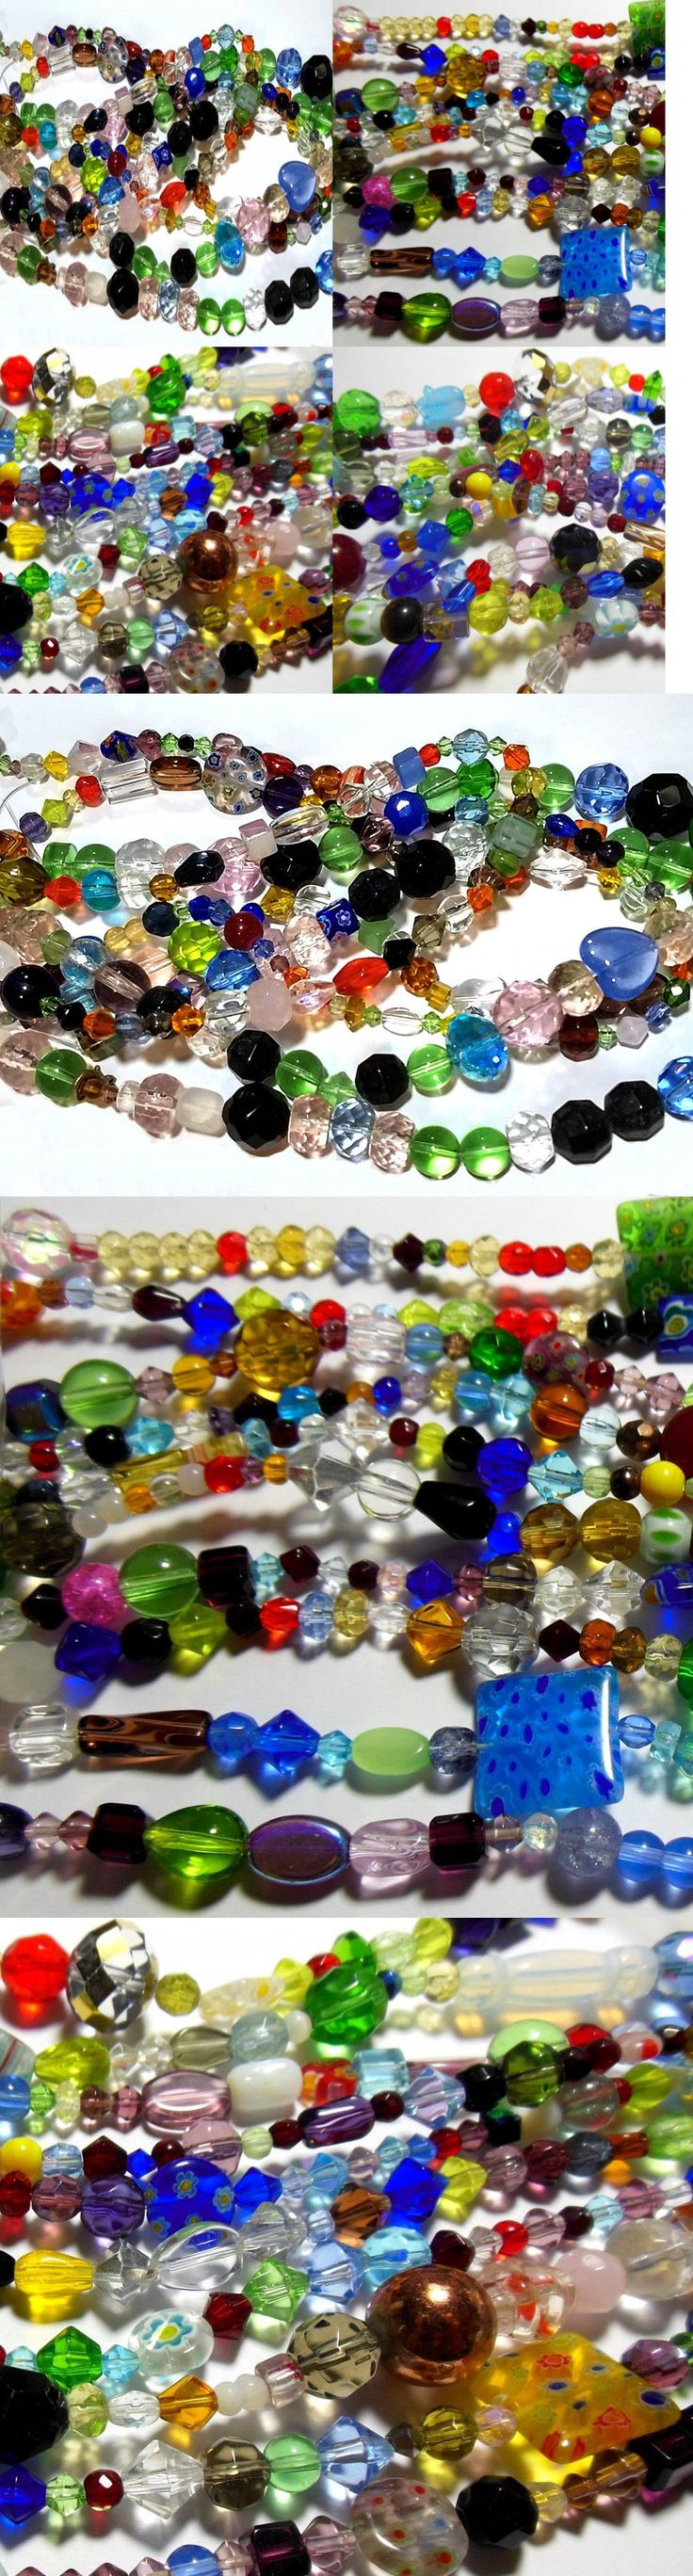 itm mixed colors beads glass one lot assorted lampwork pound bulk in buy hot wholesale